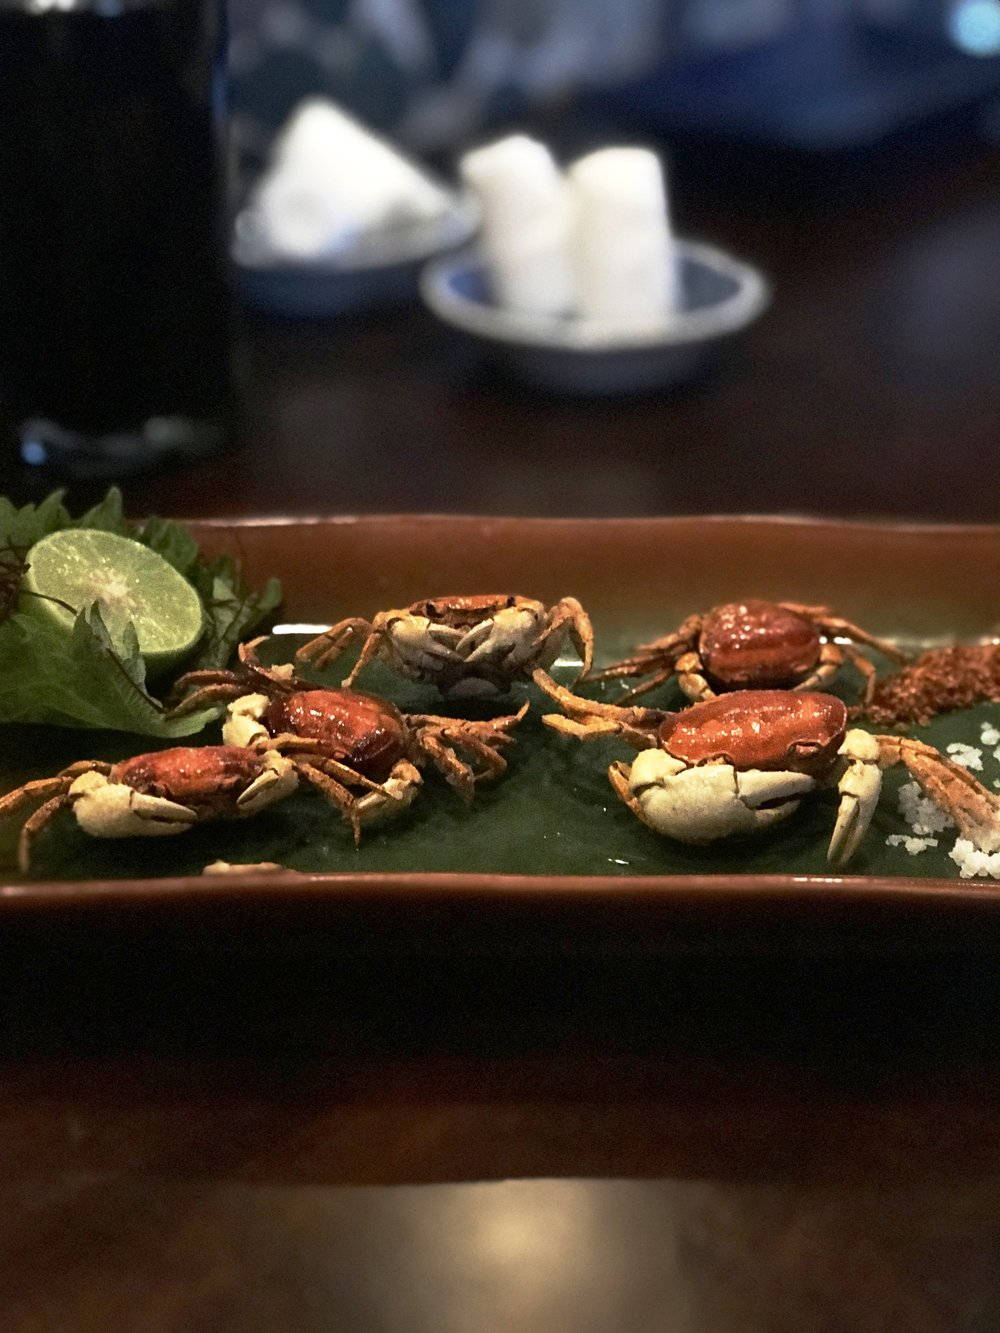 SAWAGANI - PRO TIP: SQUEEZE LIME JUICE ON TOP OF CRAB SHELL, BE ADVENTUROUS, AND EAT THE WHOLE CRAB AT ONCE! DON'T BE SCARED ;)